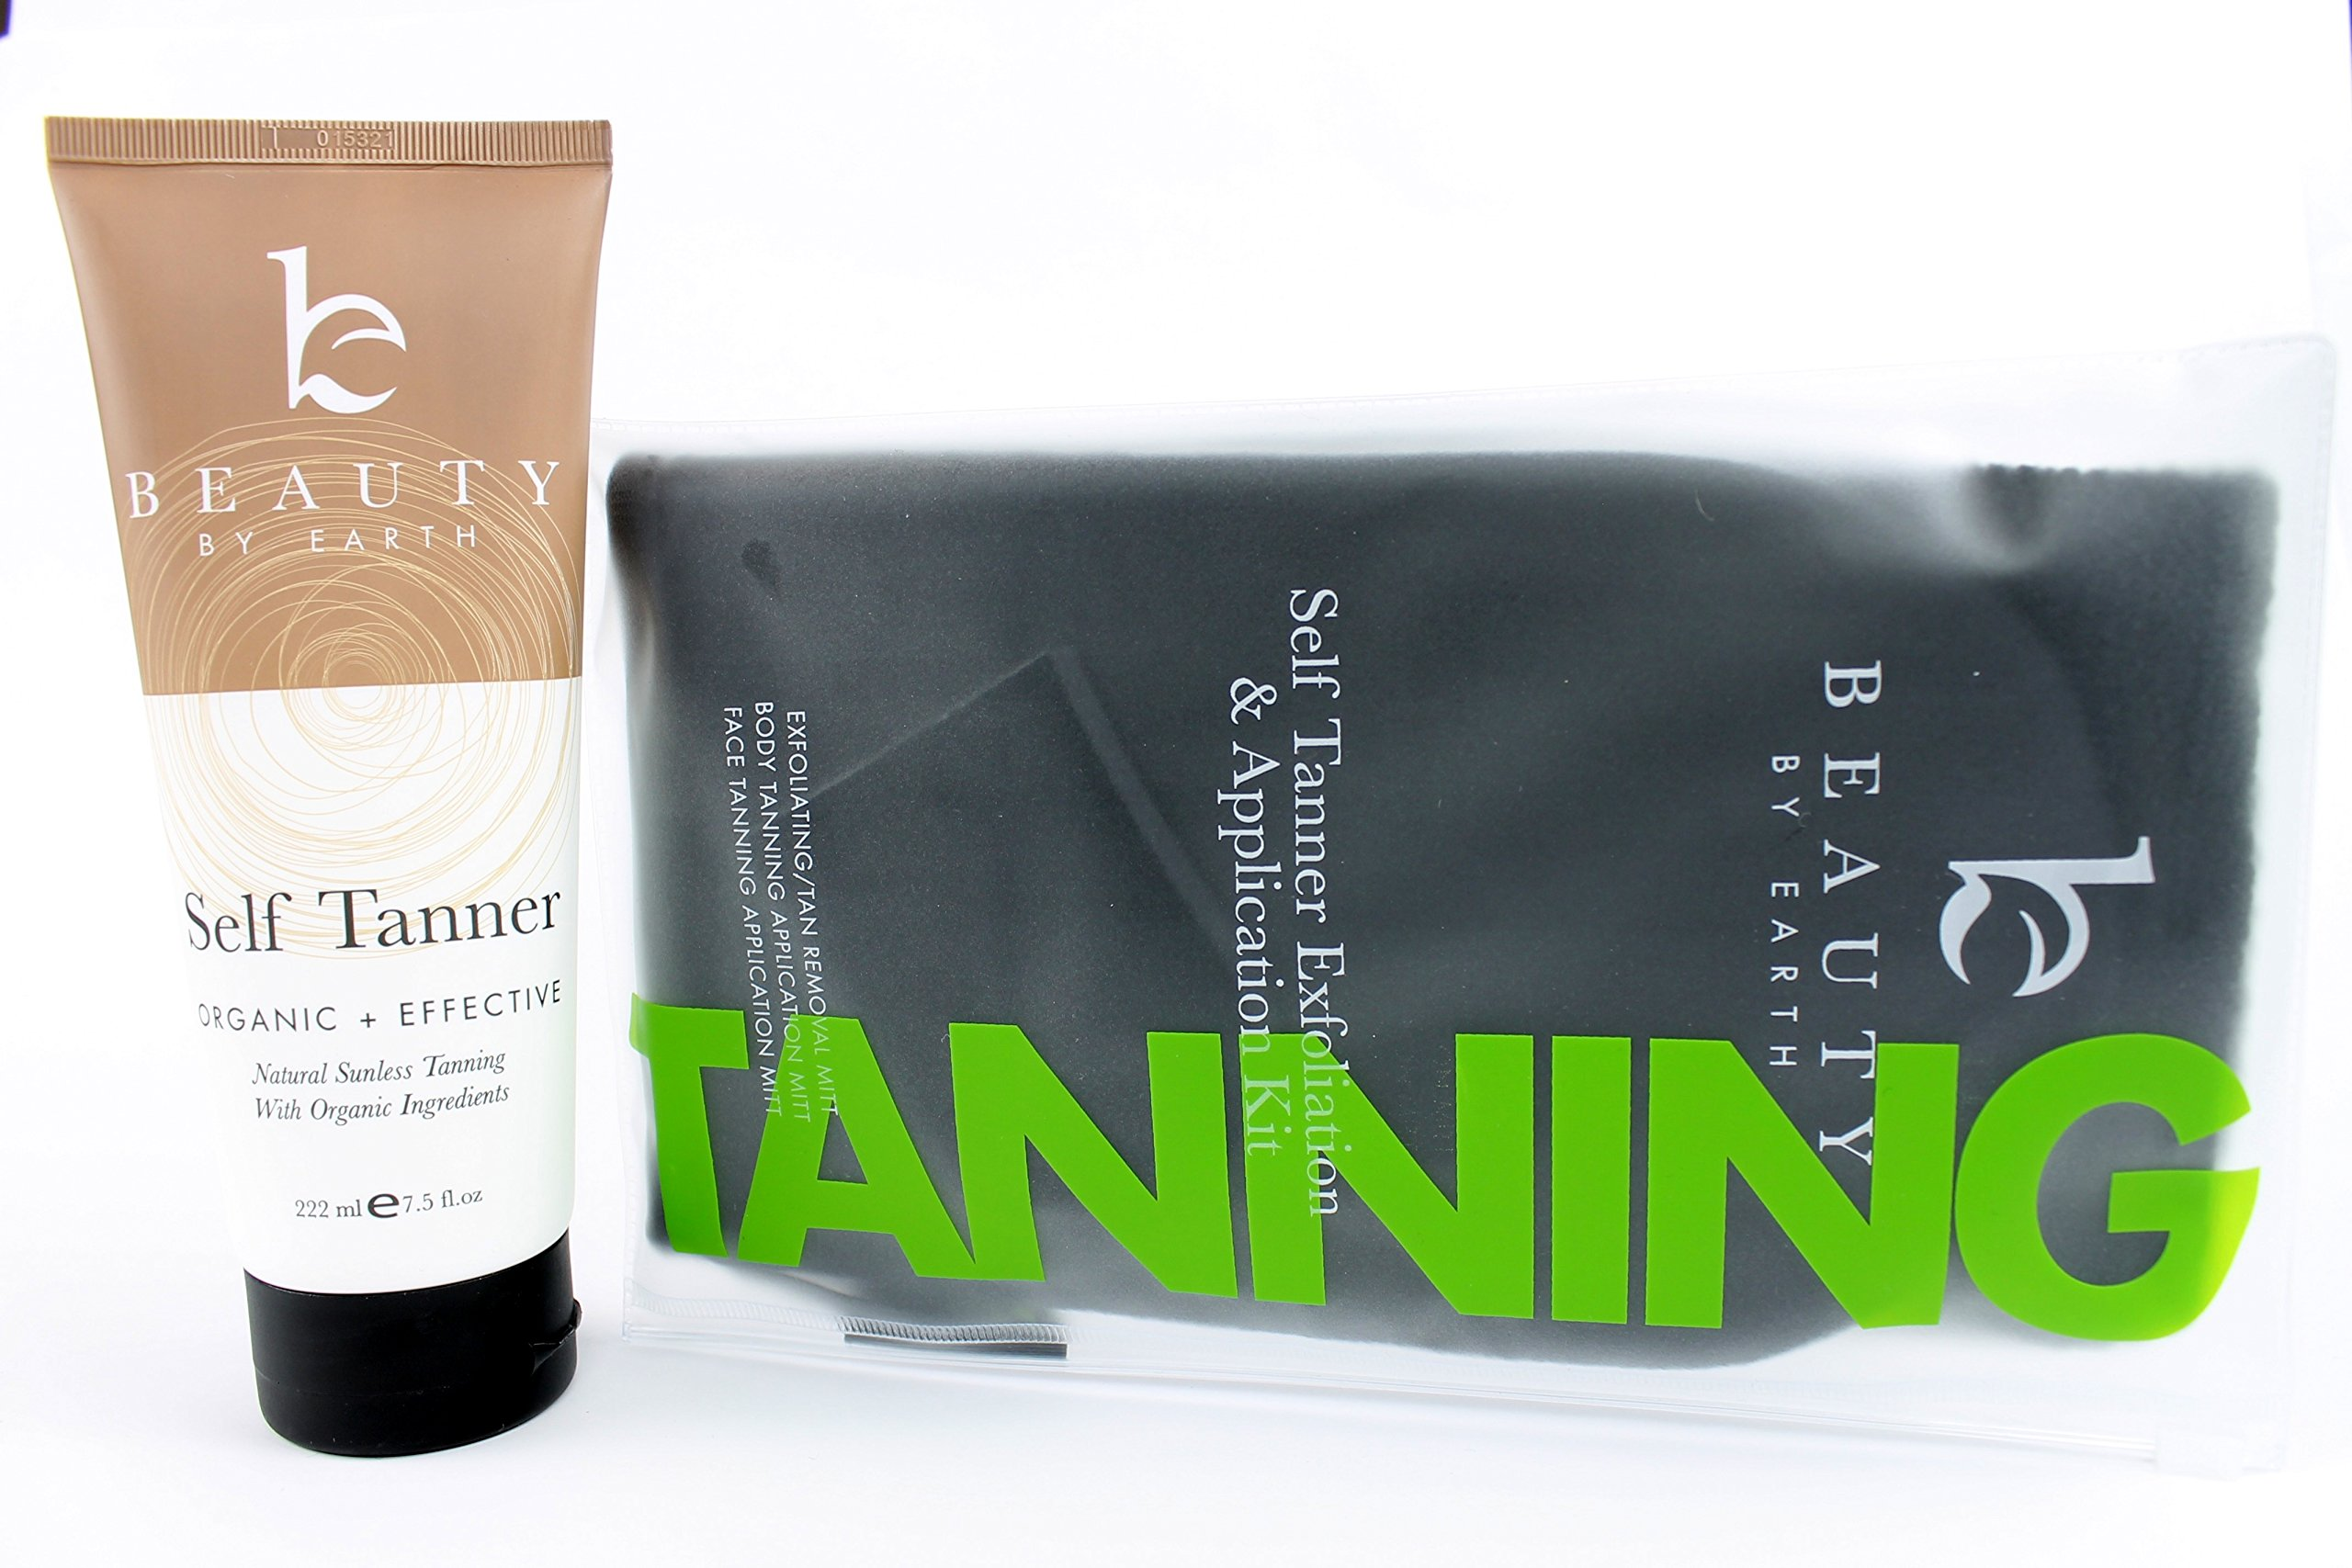 Self Tanner & Tanning Application Kit - Bundle of Sunless Tanning Lotion Made With Natural & Organic Ingredients, Exfoliation Mitt, Body and Face Applicator Glove for a Professional Self Tan by Beauty by Earth (Image #5)